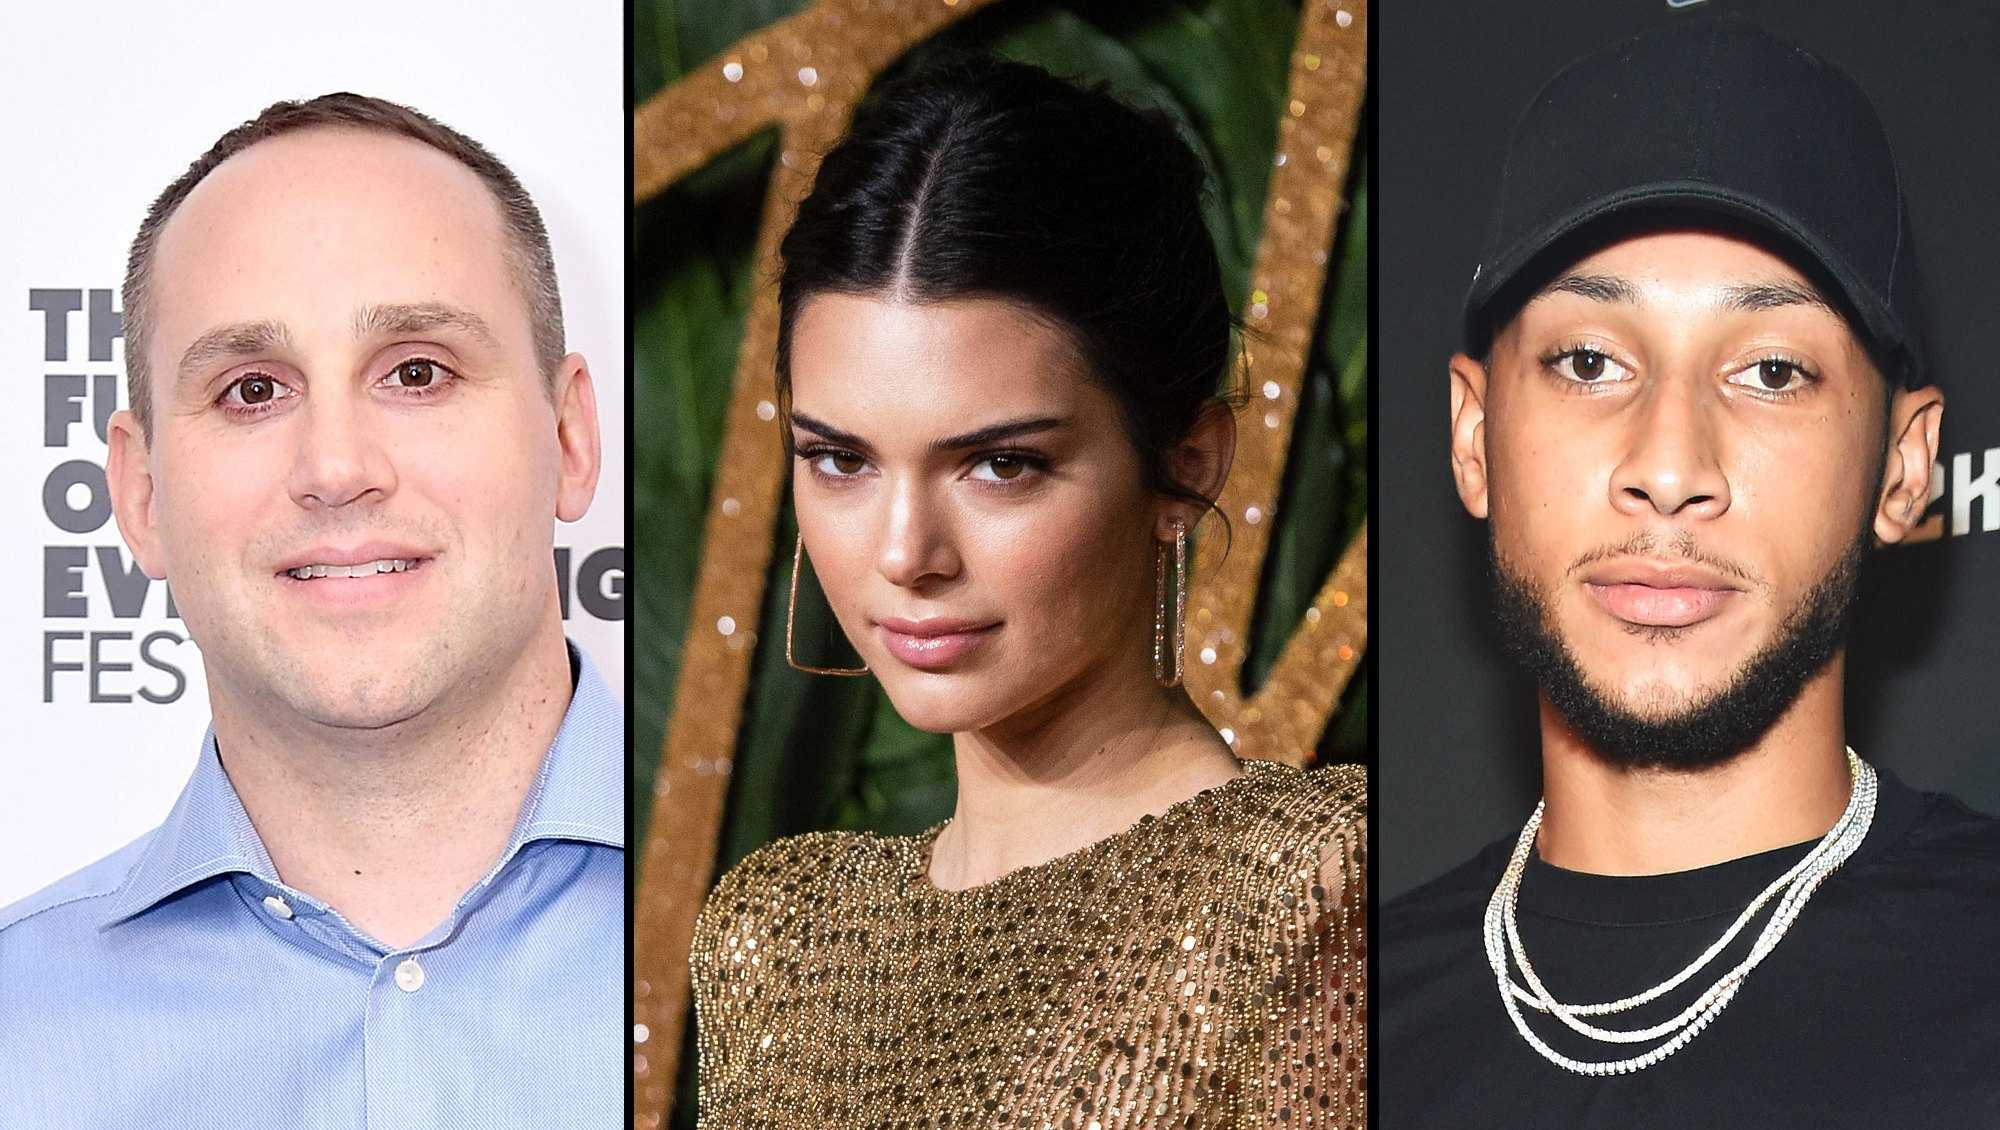 Michael Rubin, Kendall Jenner and Ben Simmons